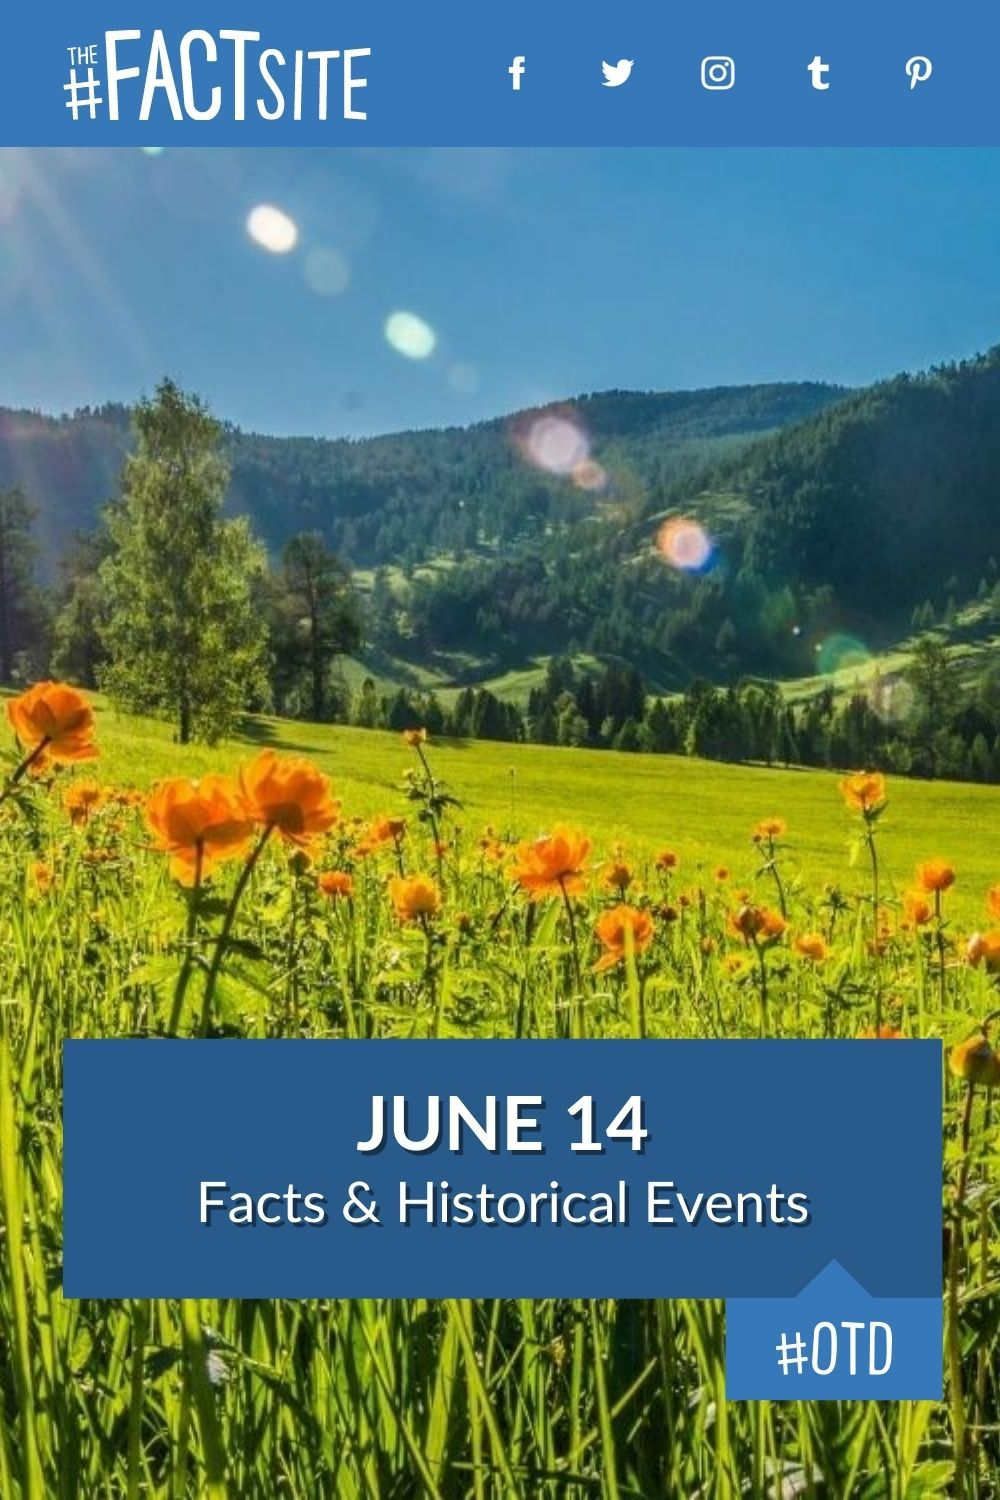 Facts & Historic Events That Happened on June 14